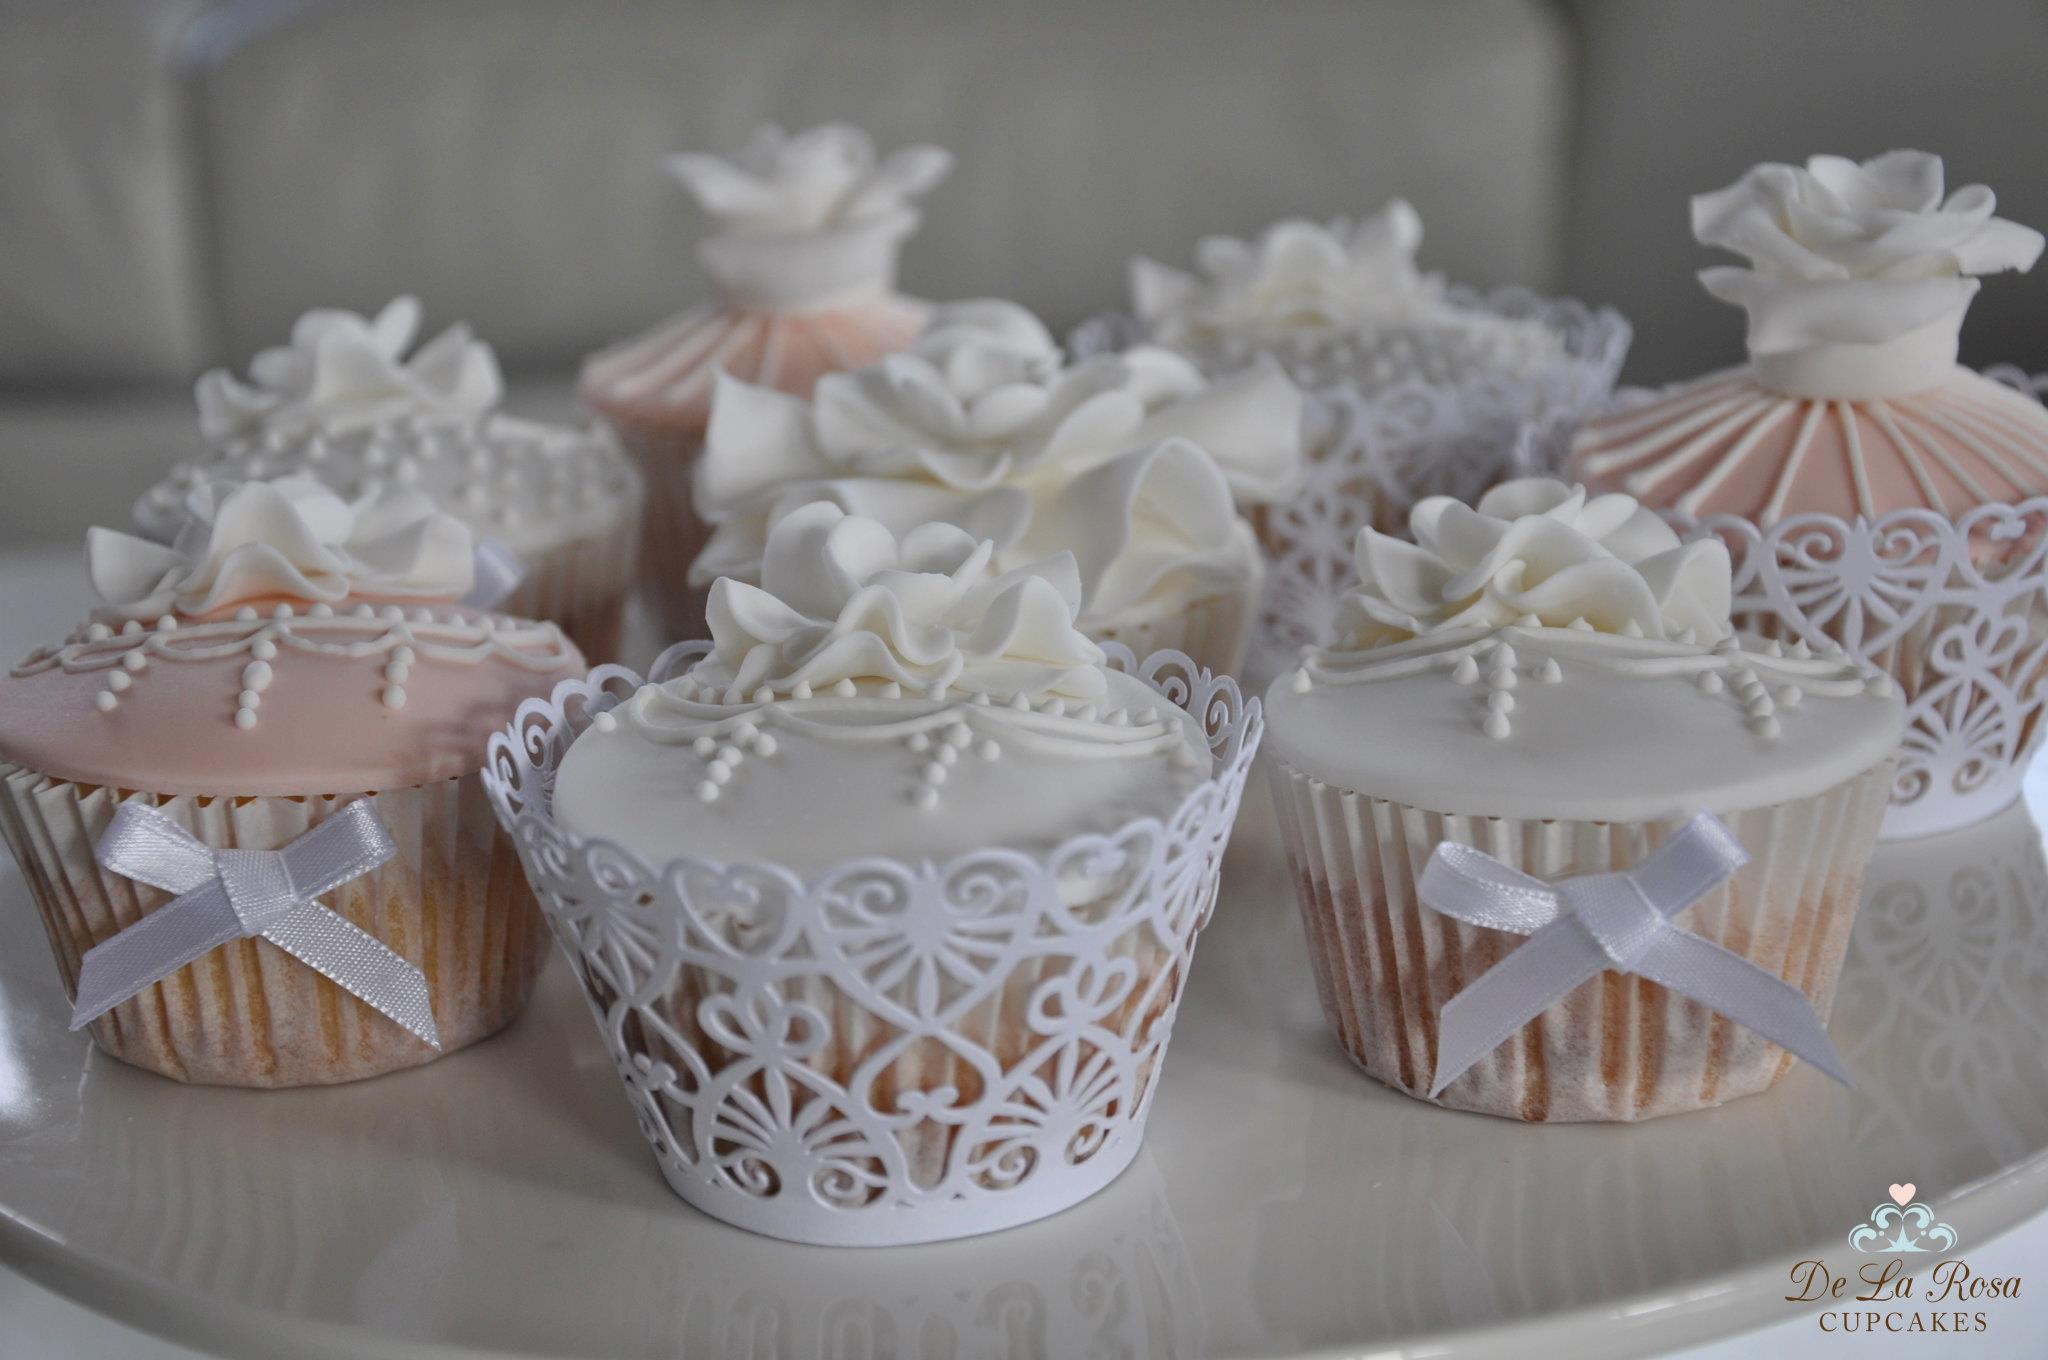 Wedding Cupcakes - time to revisit this beautiful option...